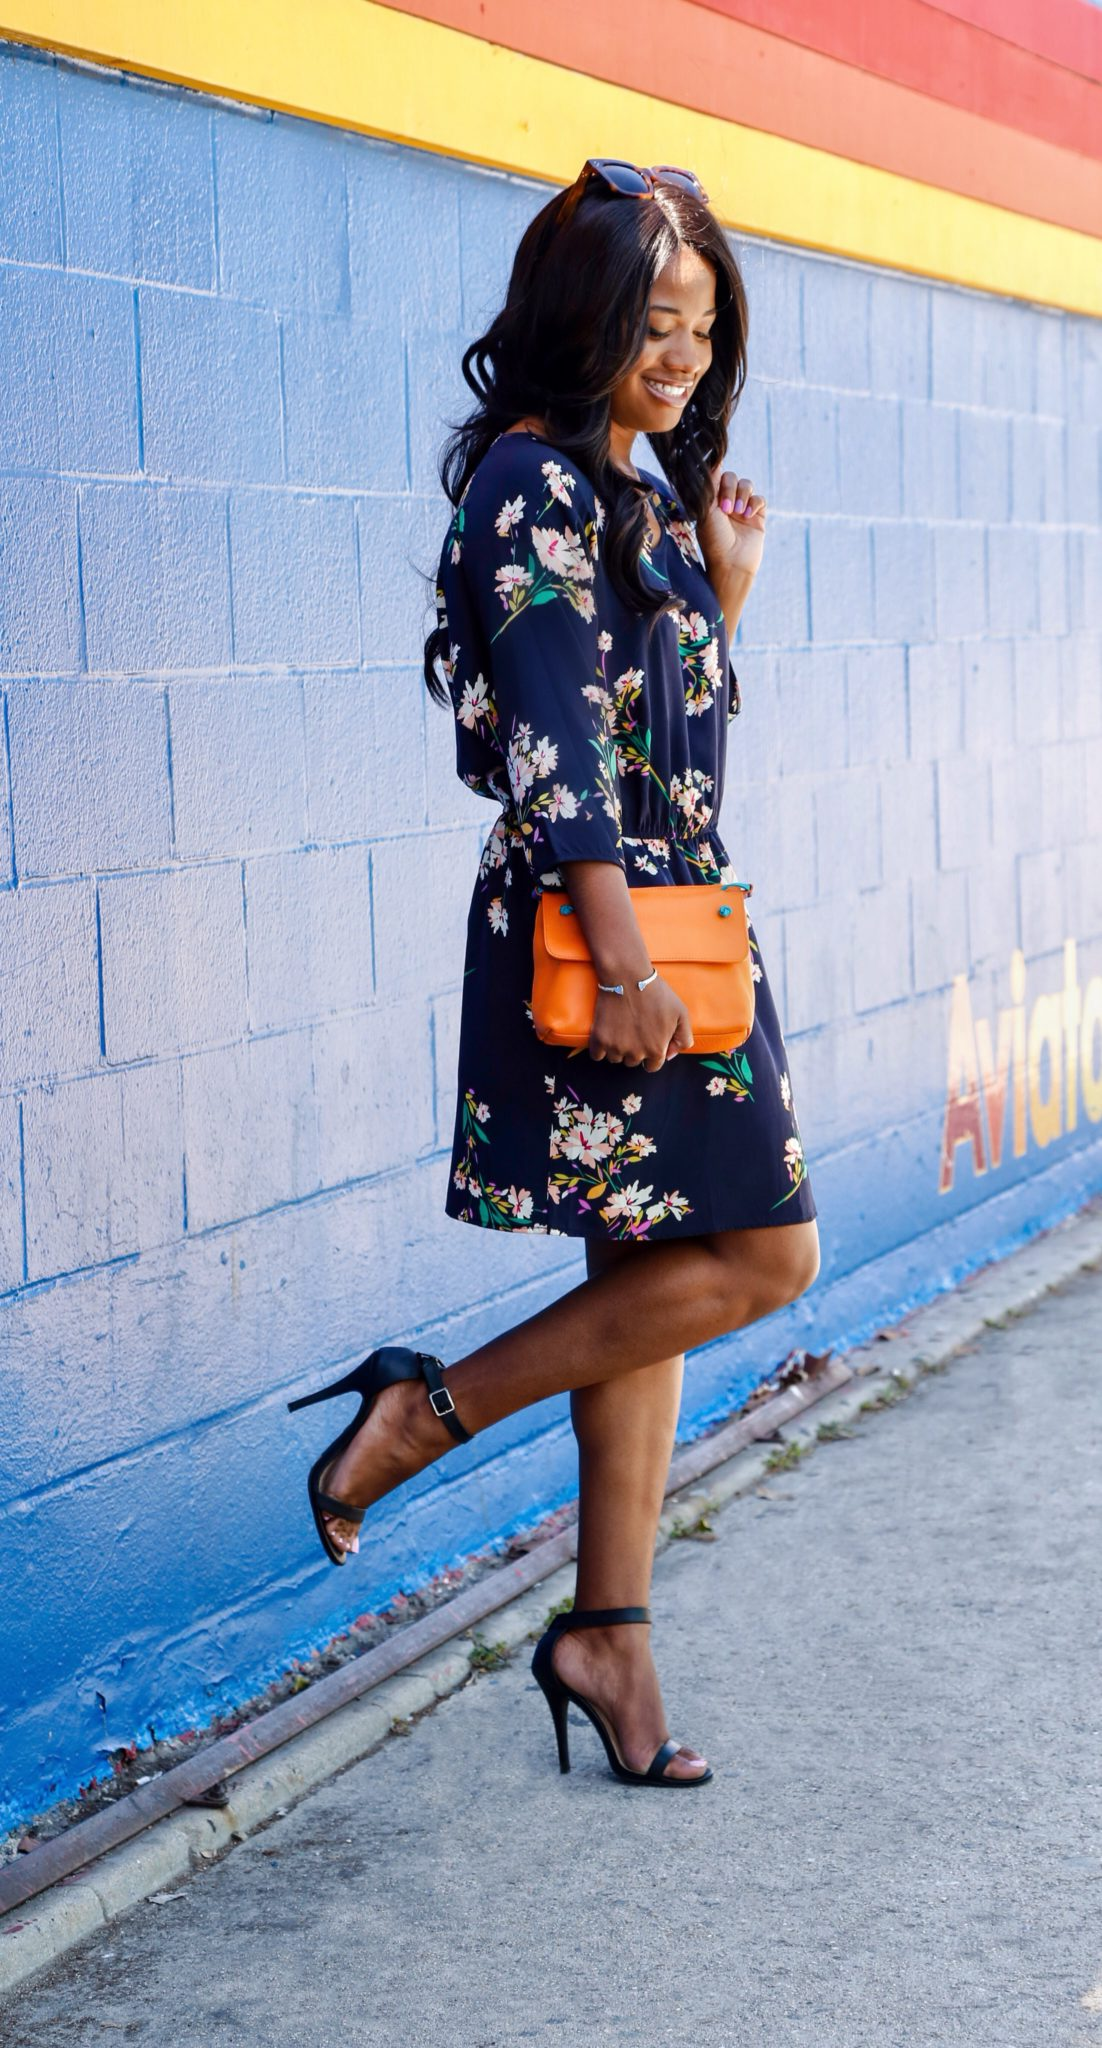 DowntownDemure.com x MyWalit Rio Bag Review